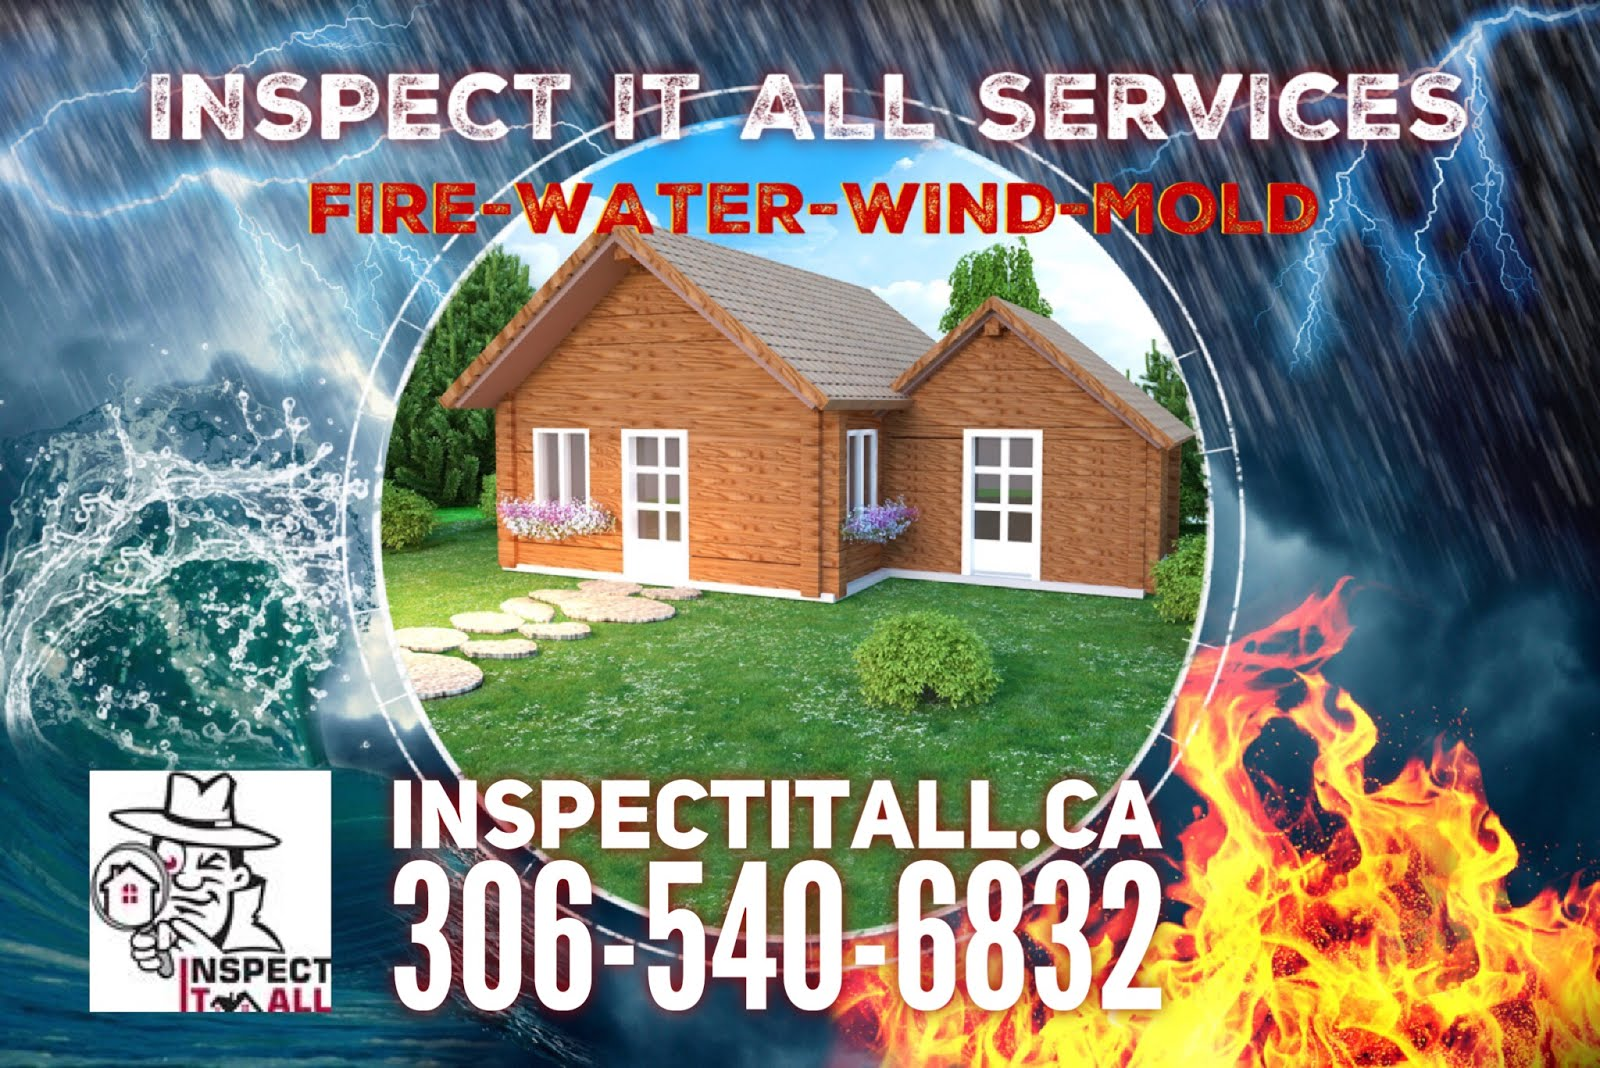 INSPECT IT ALL SERVICES